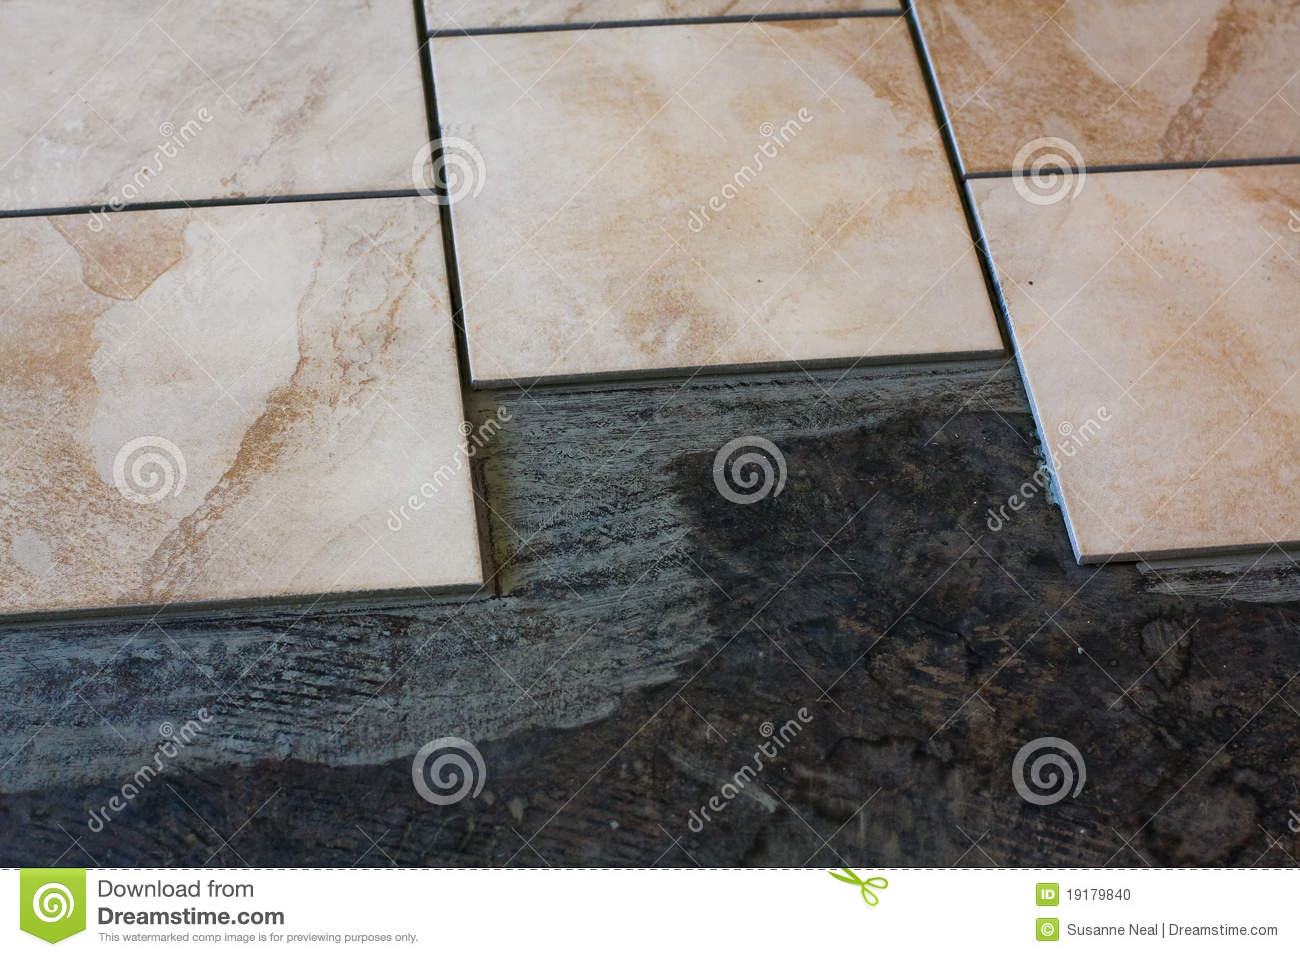 Tan Colored Porcelain Tiles Are Being Installed On A Concrete Floor